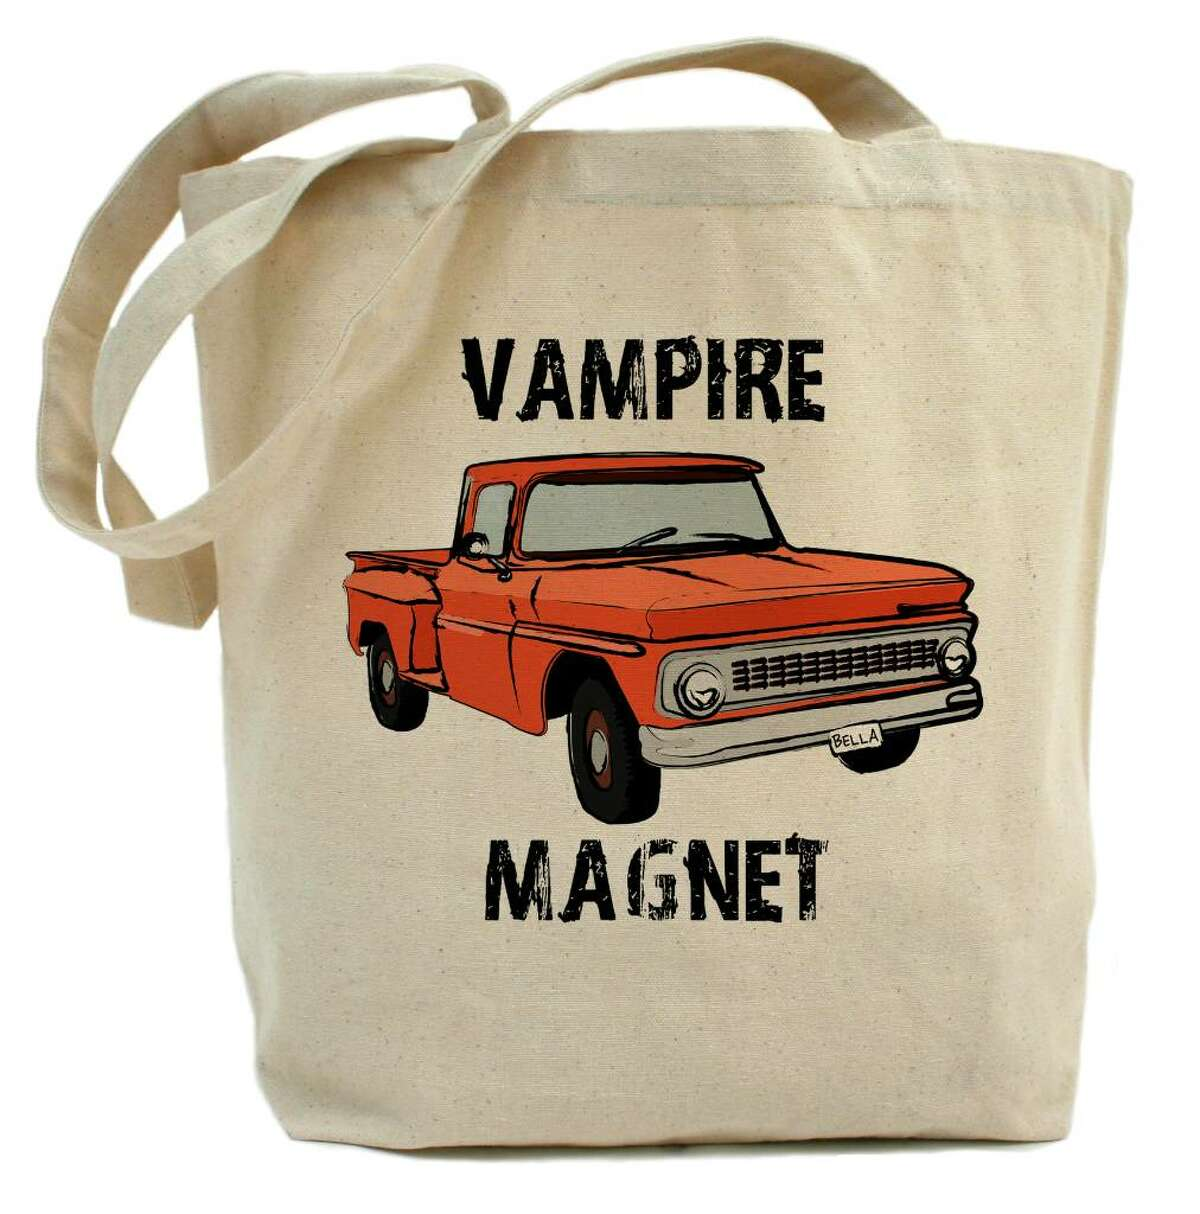 TOTALLY CUTE: At the online retailer Cafe Press, movie fans will find more than 960,000 Twilight-themed items, including totes, $17 each. (www.cafepress.com)